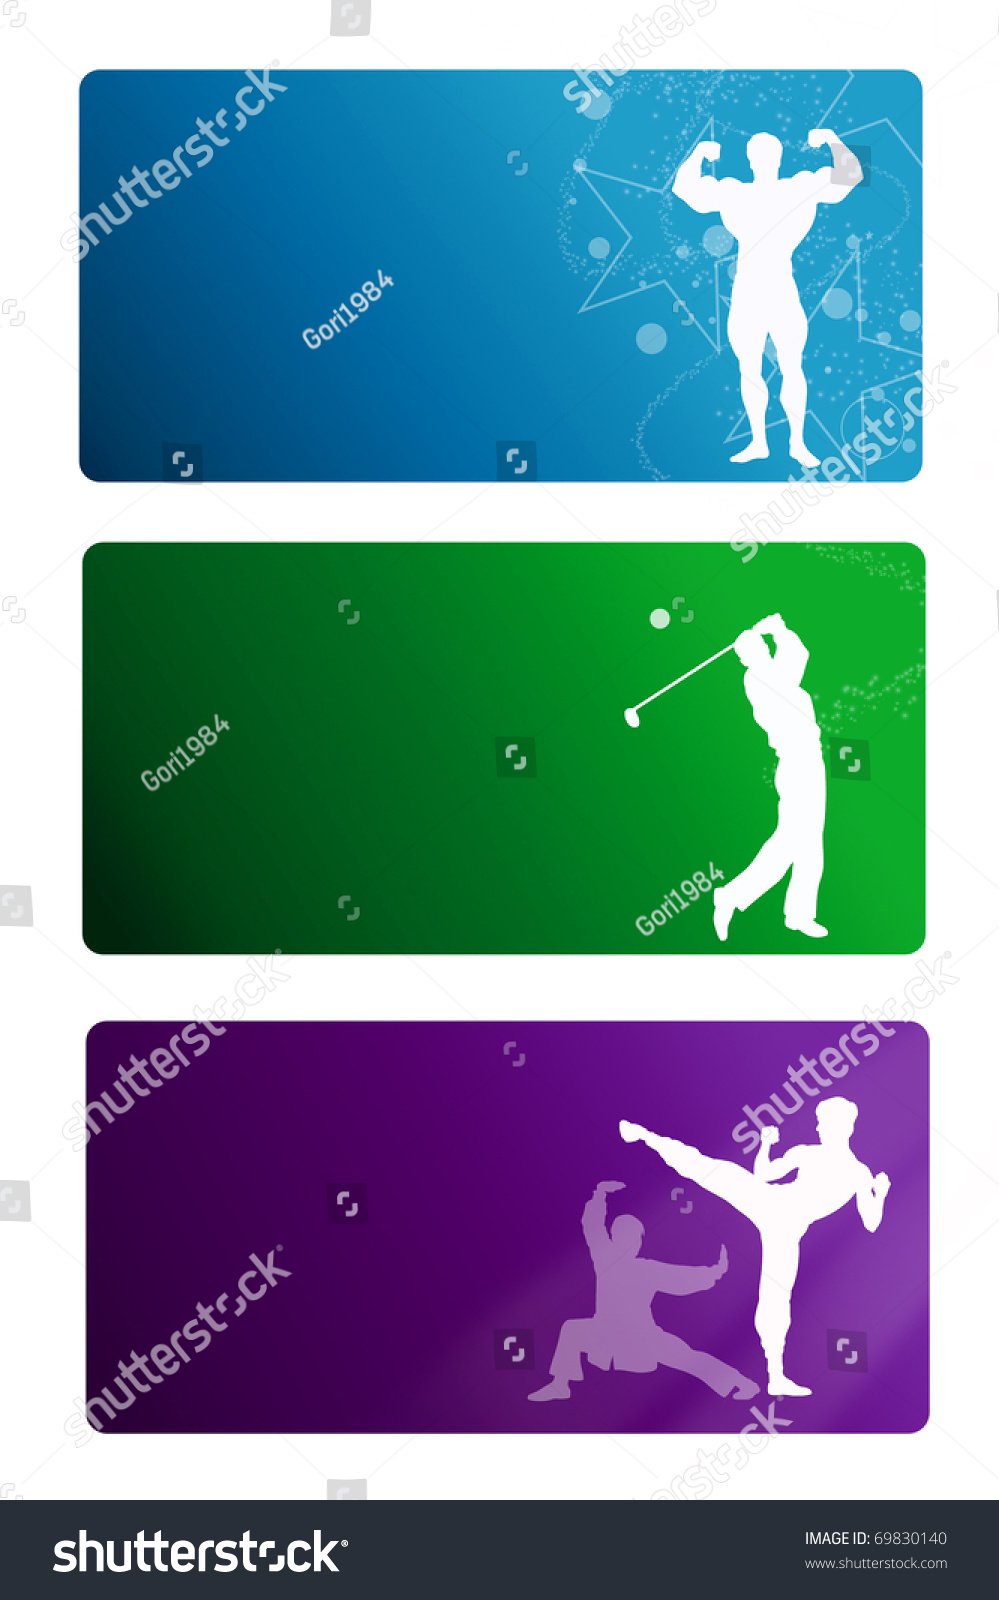 Sport business card template stock illustration 69830140 shutterstock sport business card template reheart Gallery